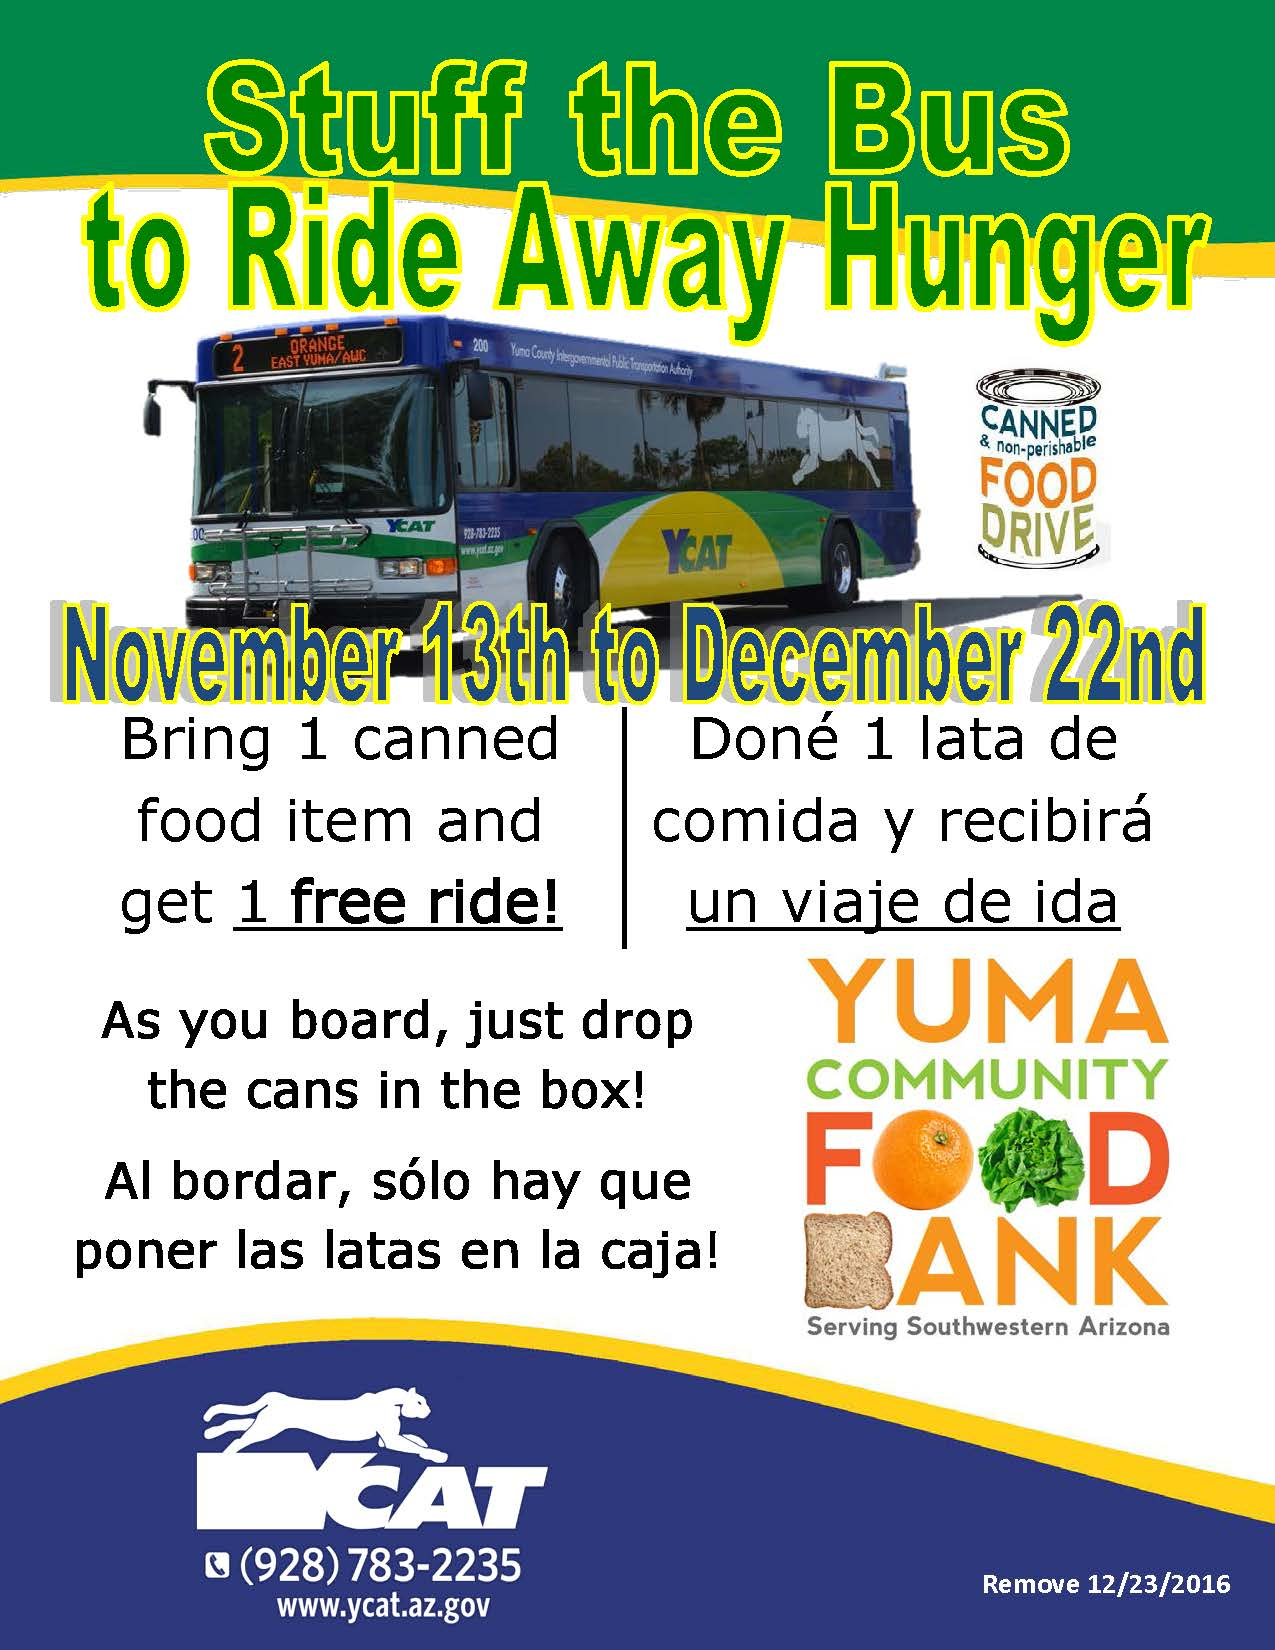 News - Stuff the Bus to Ride Away Hunger - Yuma Community Food Bank ...